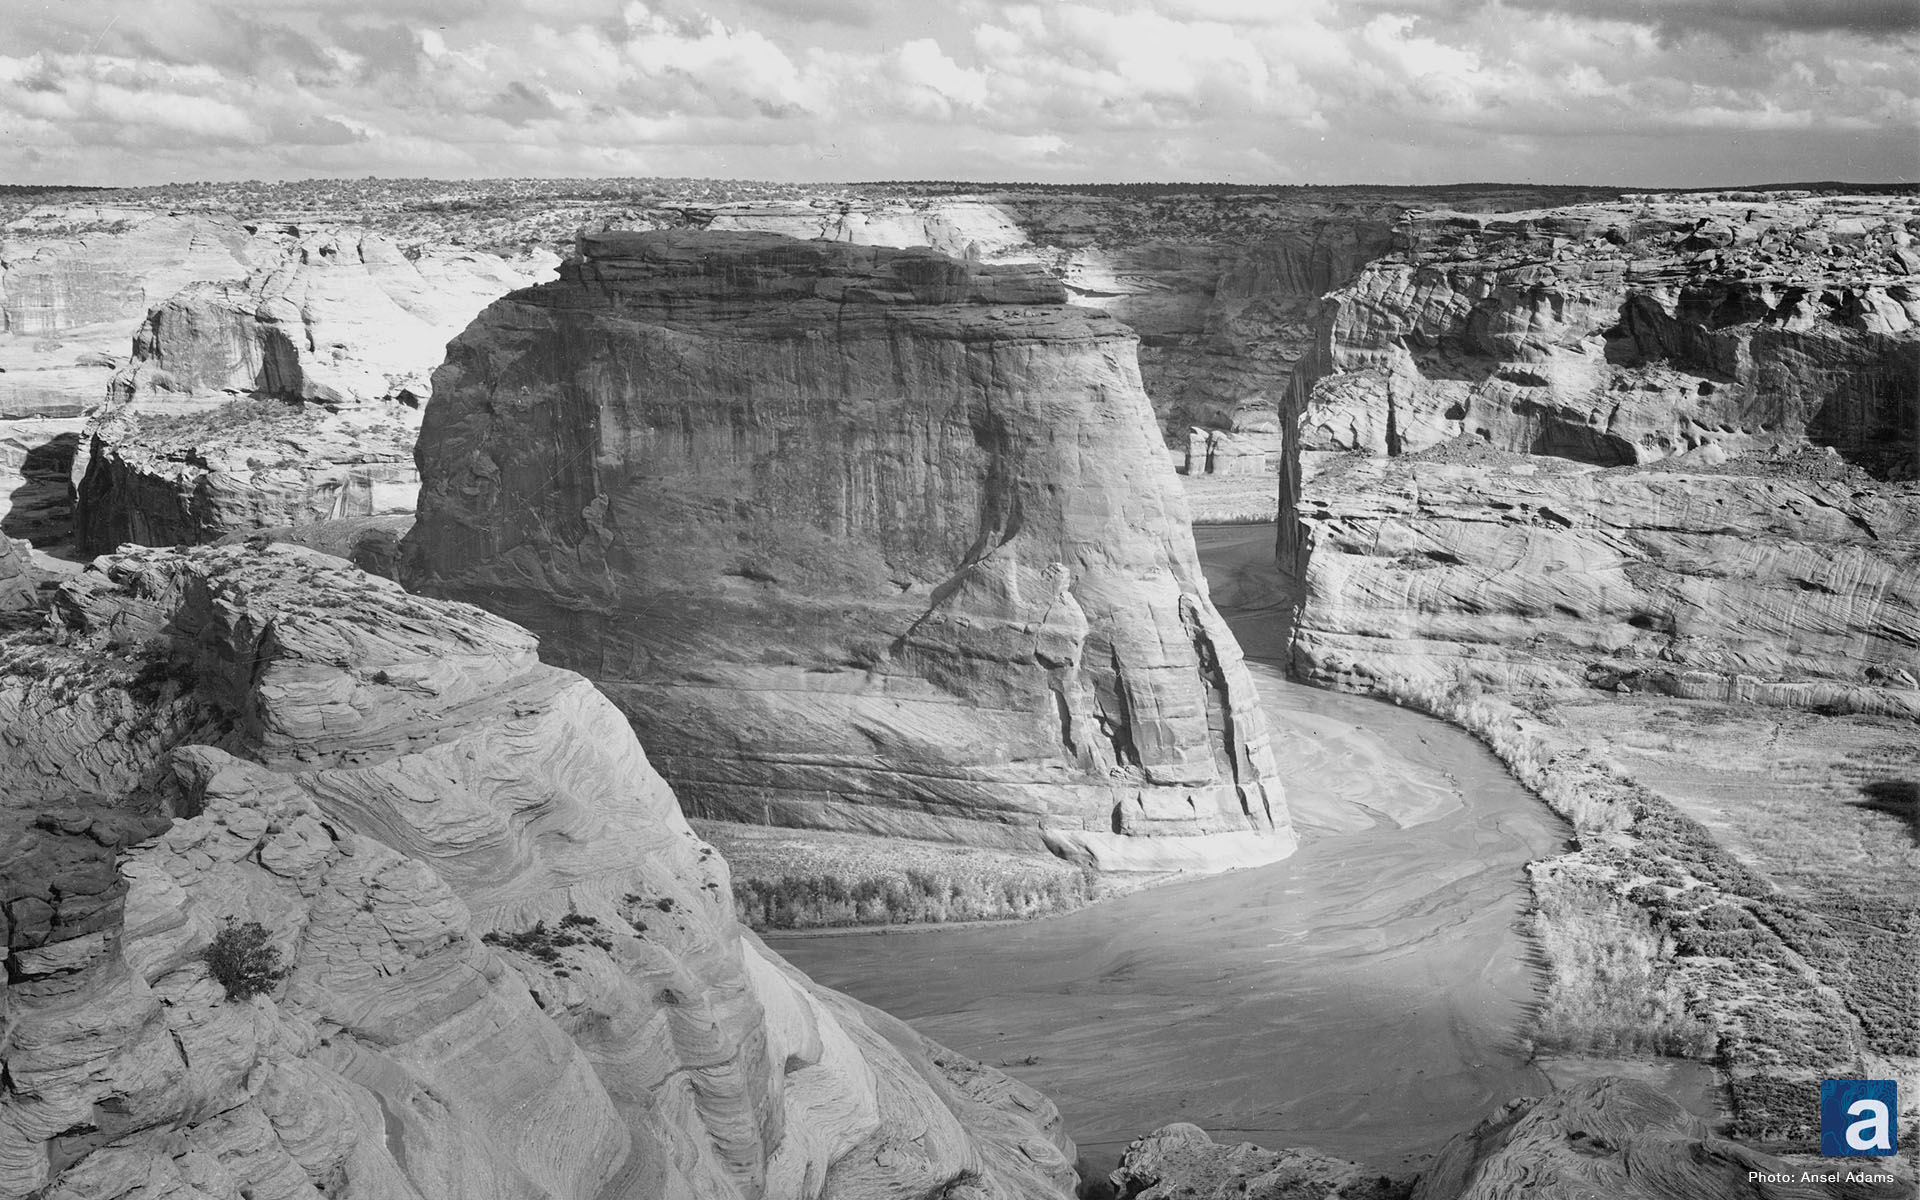 Ansel Adams Hd Wallpaper Ansel Adams Wallpapers Hd Pixelstalk Net